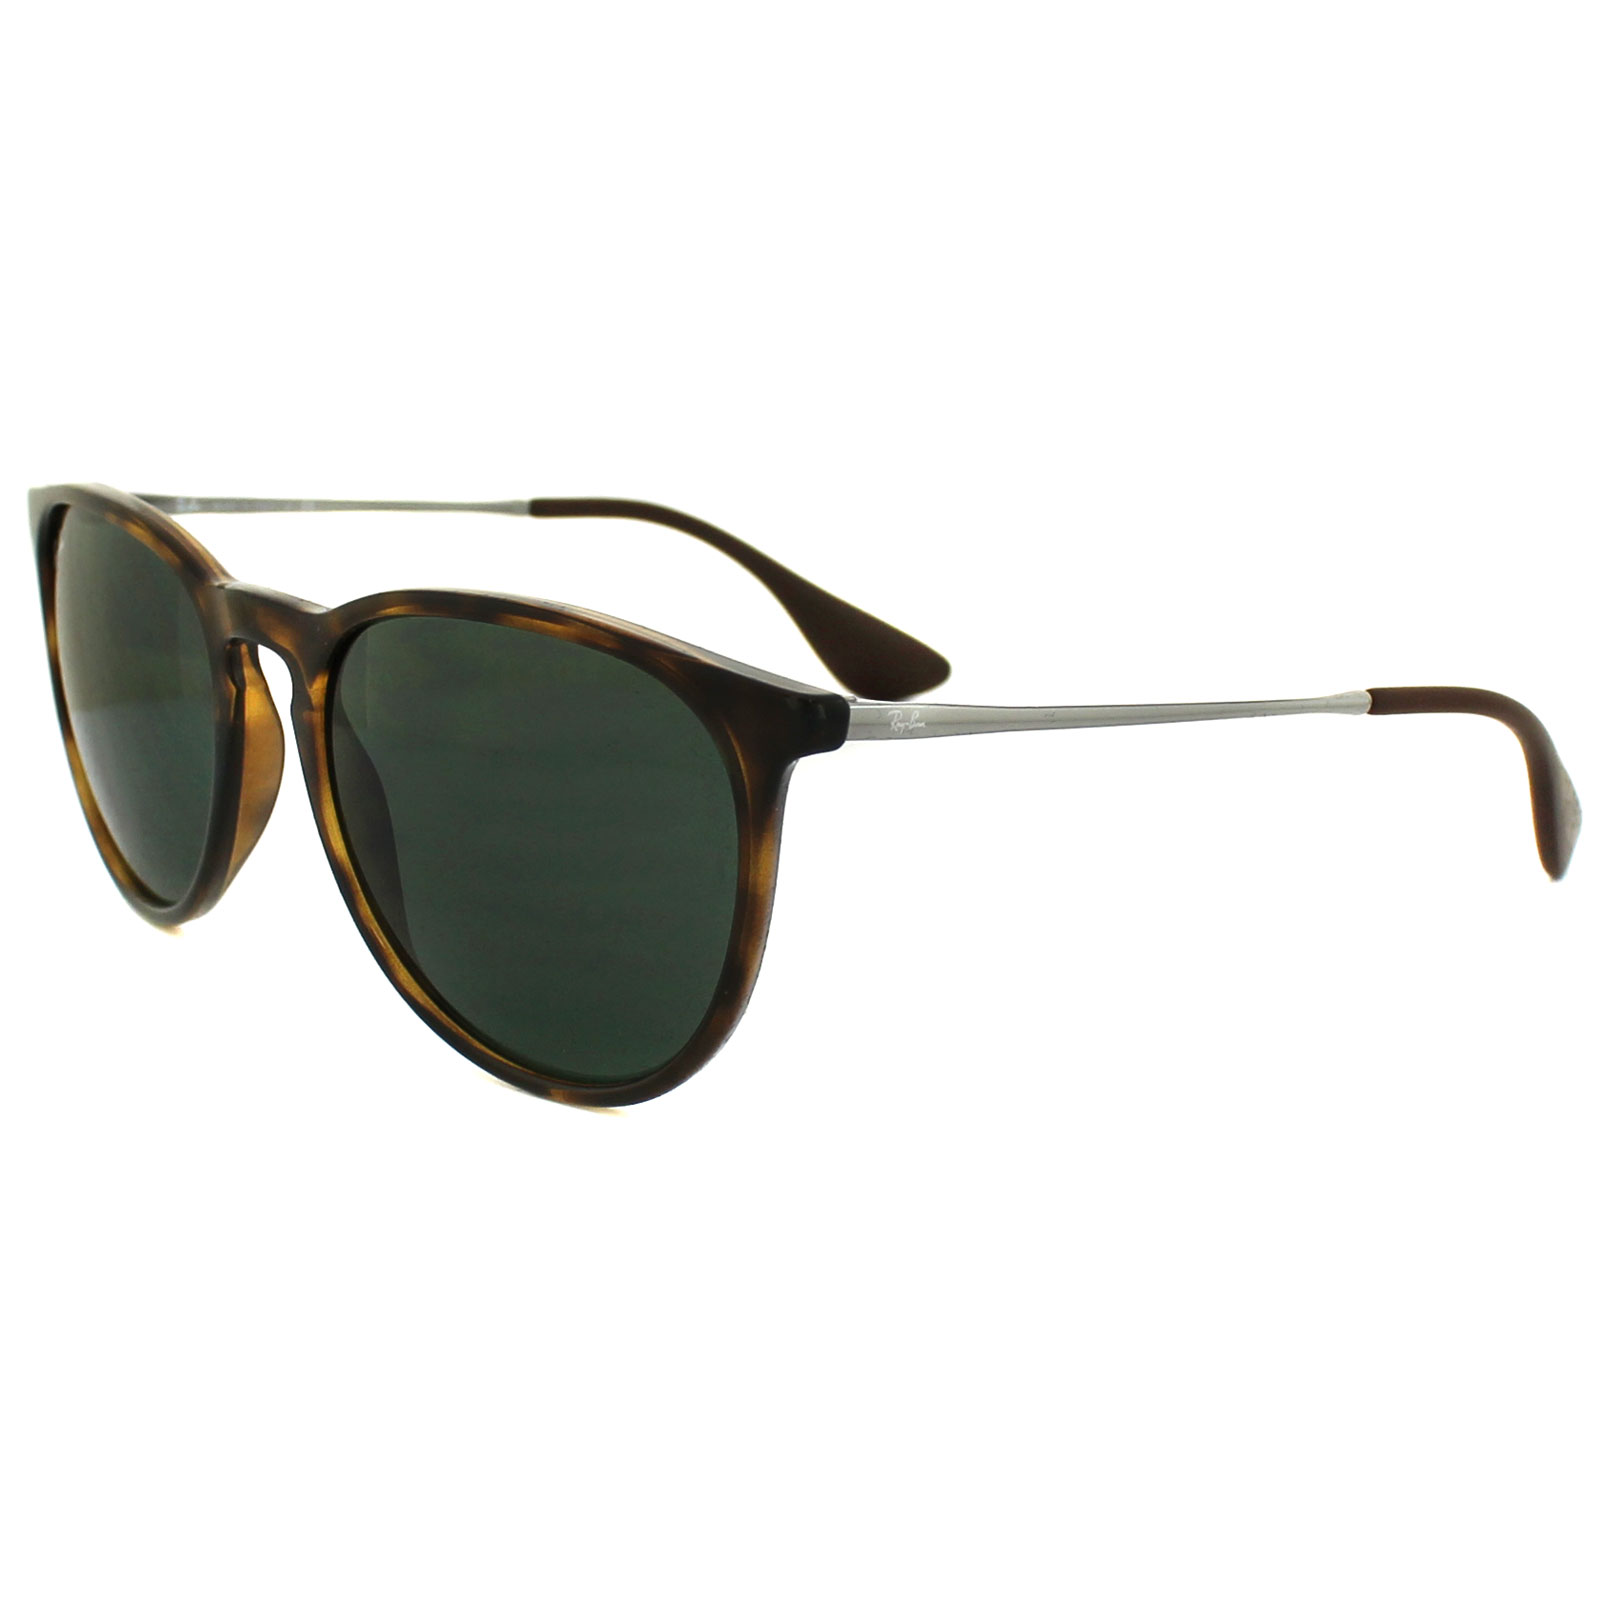 Cheap Ray Ban Erika 4171 Sunglasses Discounted Sunglasses